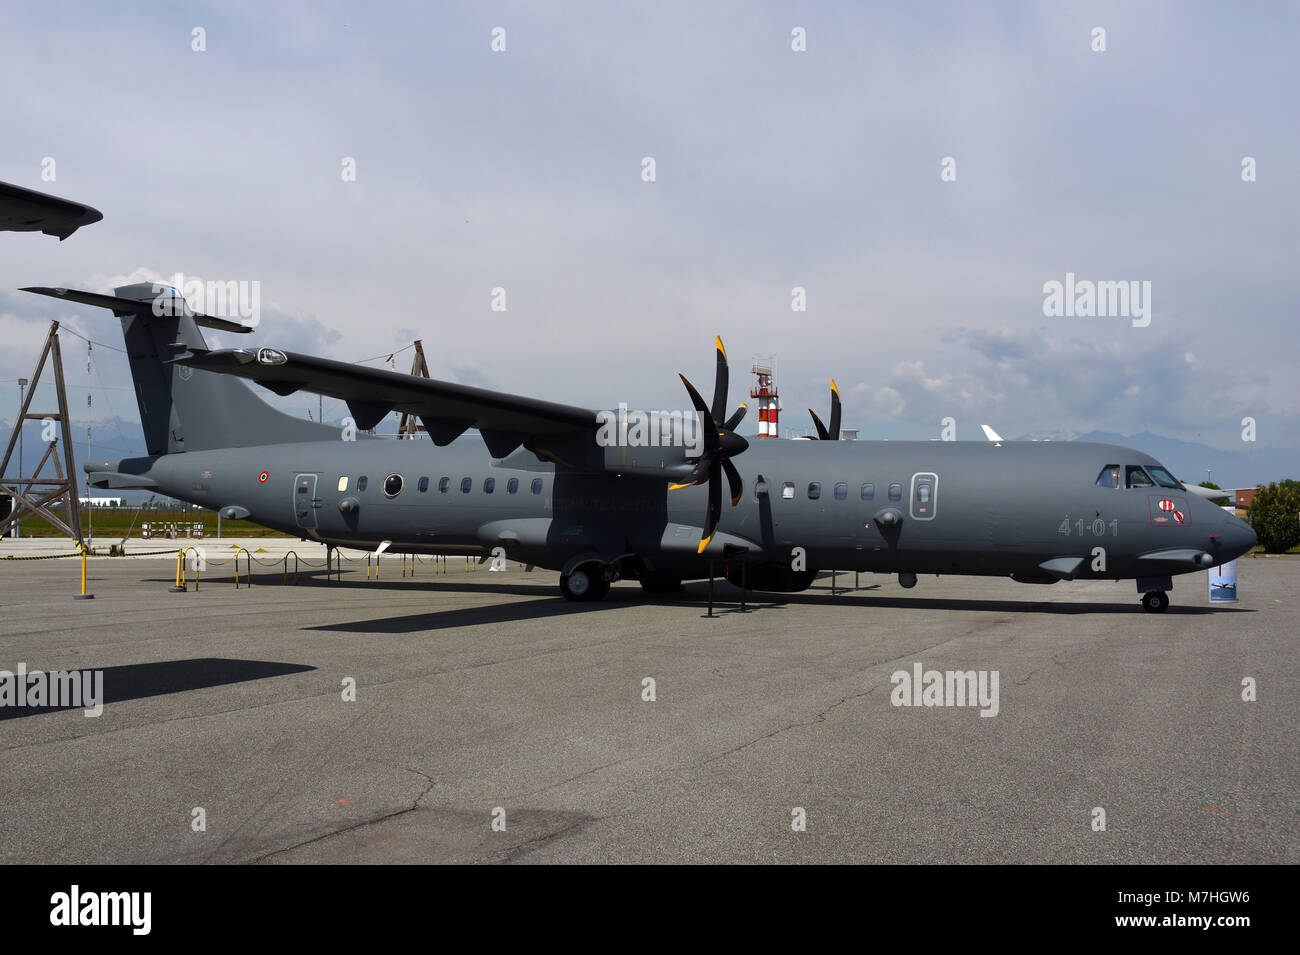 P-72A maritime patrol aircraft of the Italian Air Force. - Stock Image